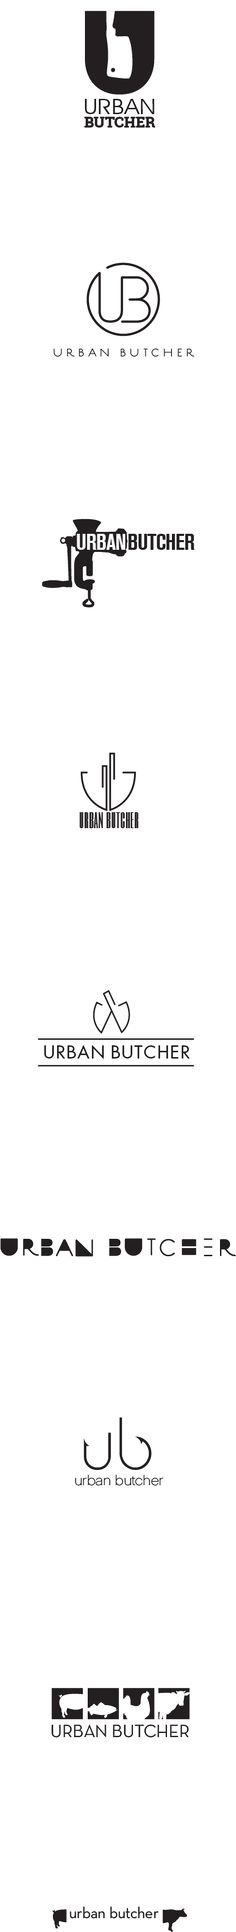 Urban Butcher logos on Behance